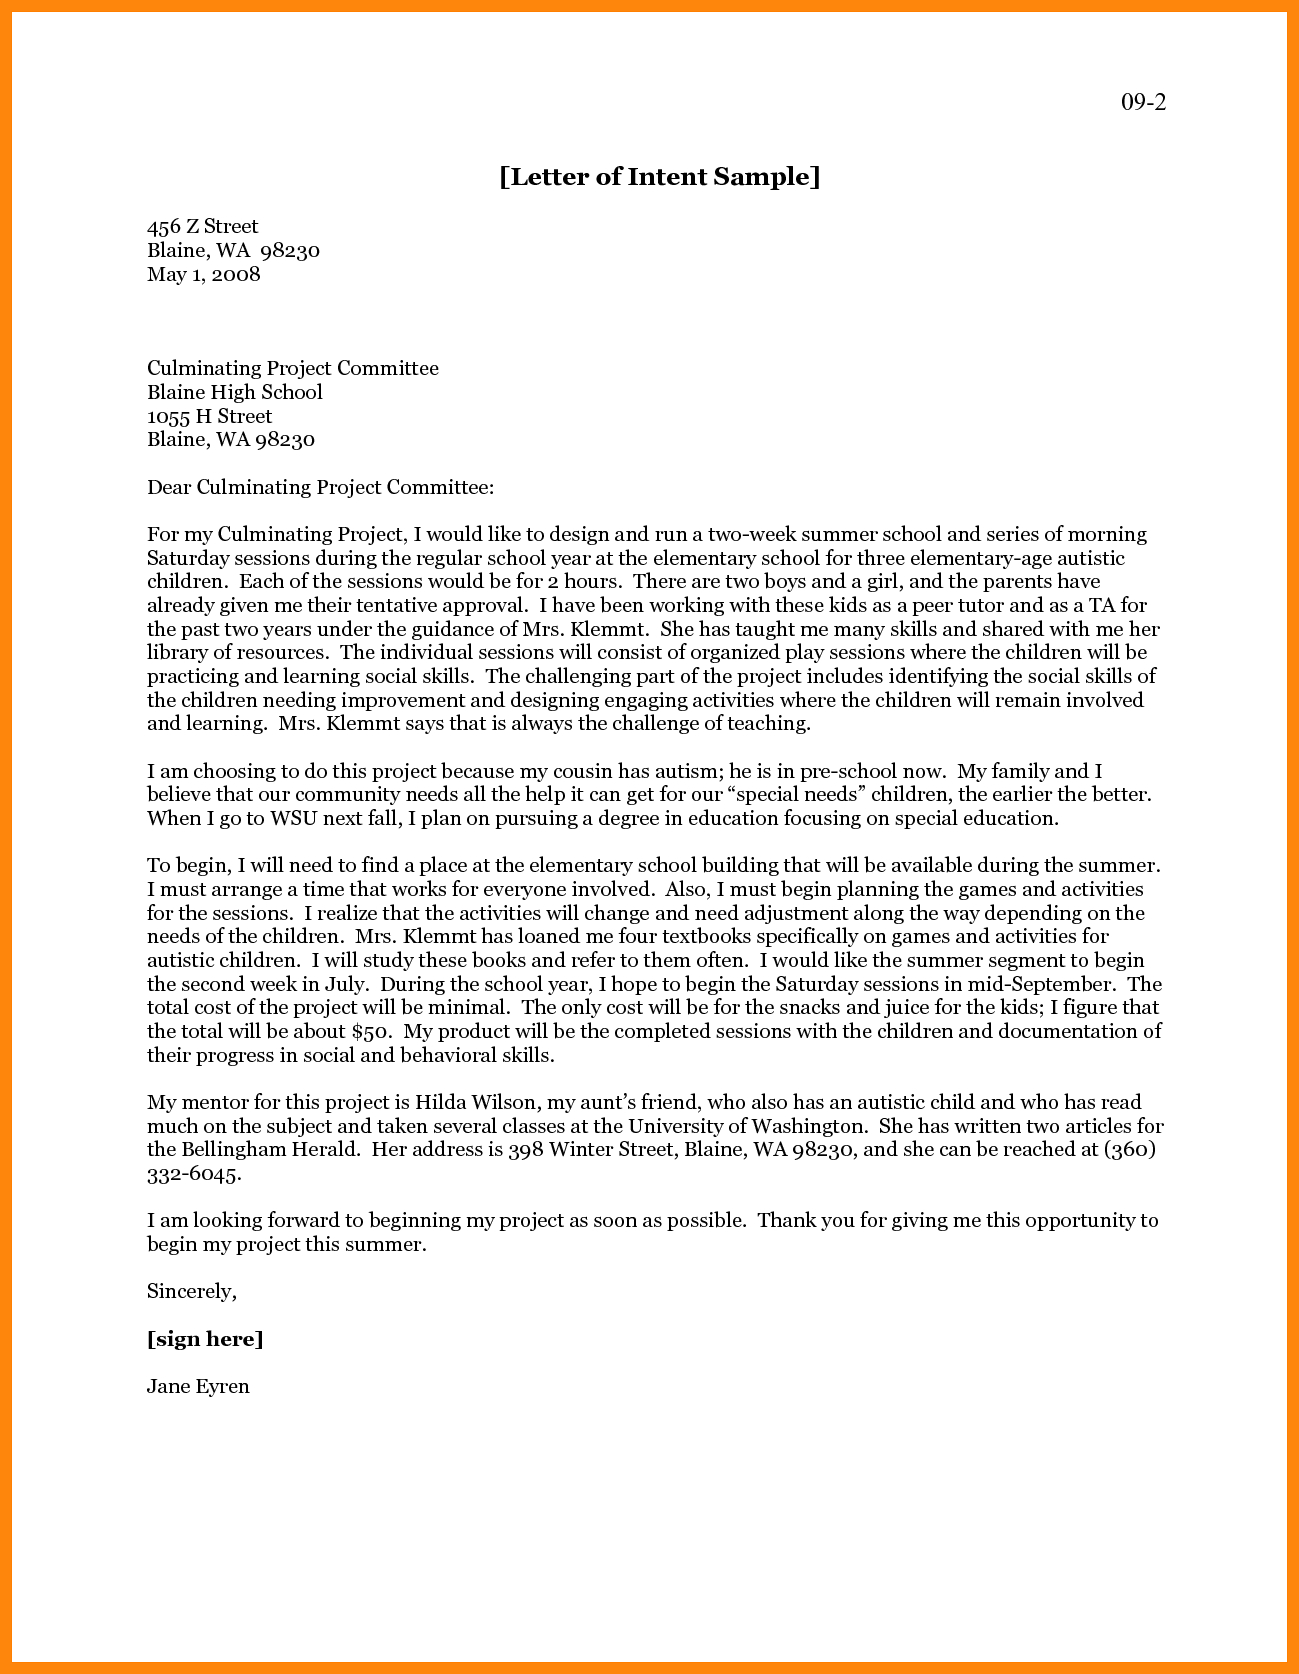 Special Needs Letter Of Intent Template Collection | Letter